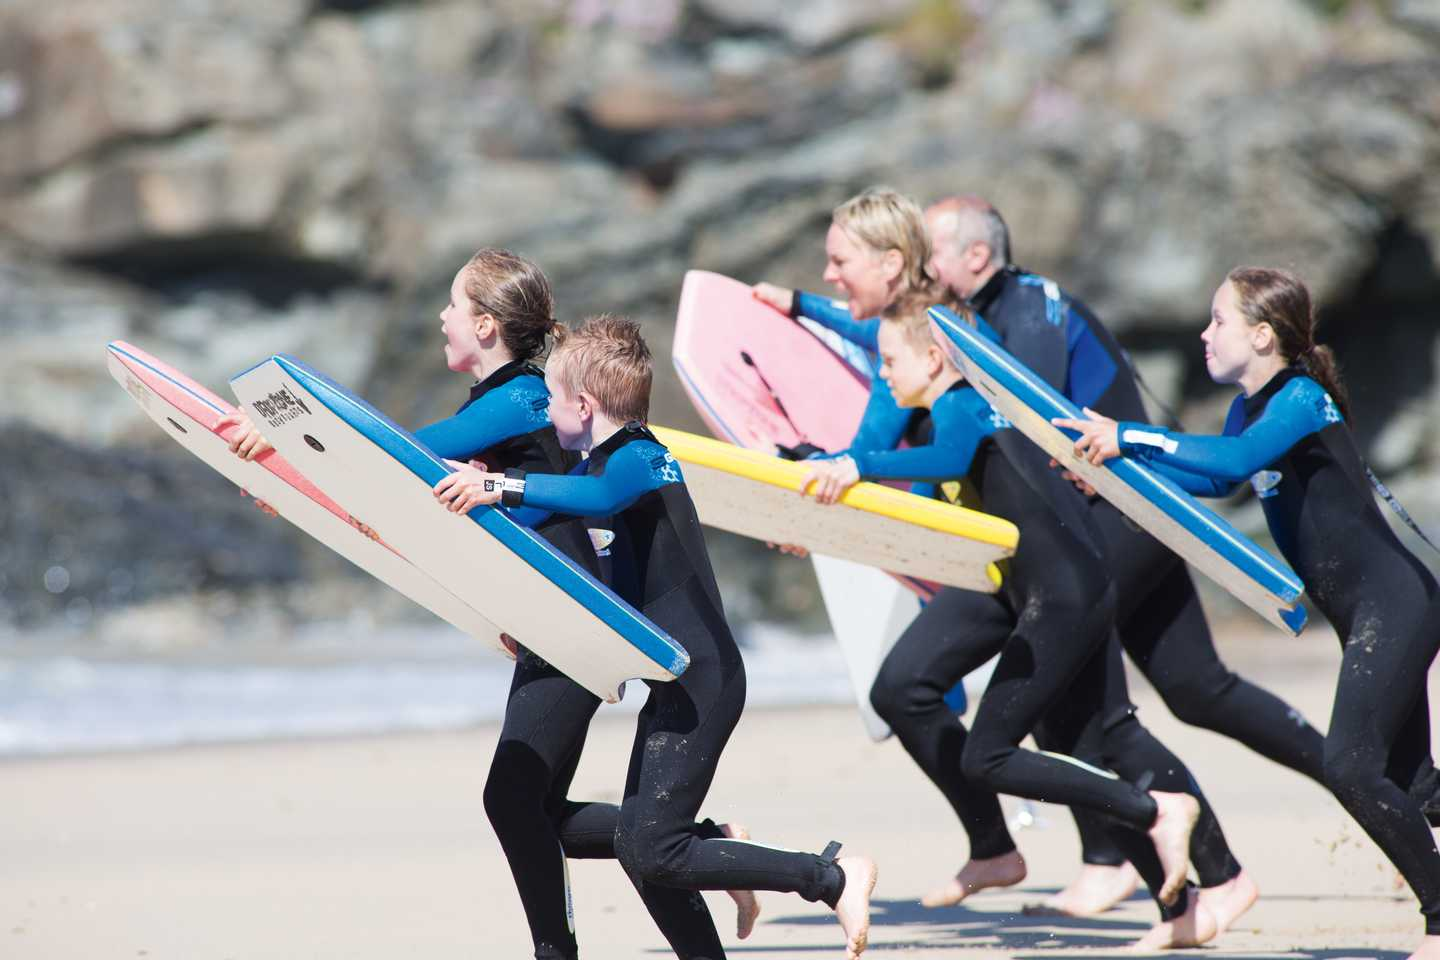 Guests running along the beach with their surf boards